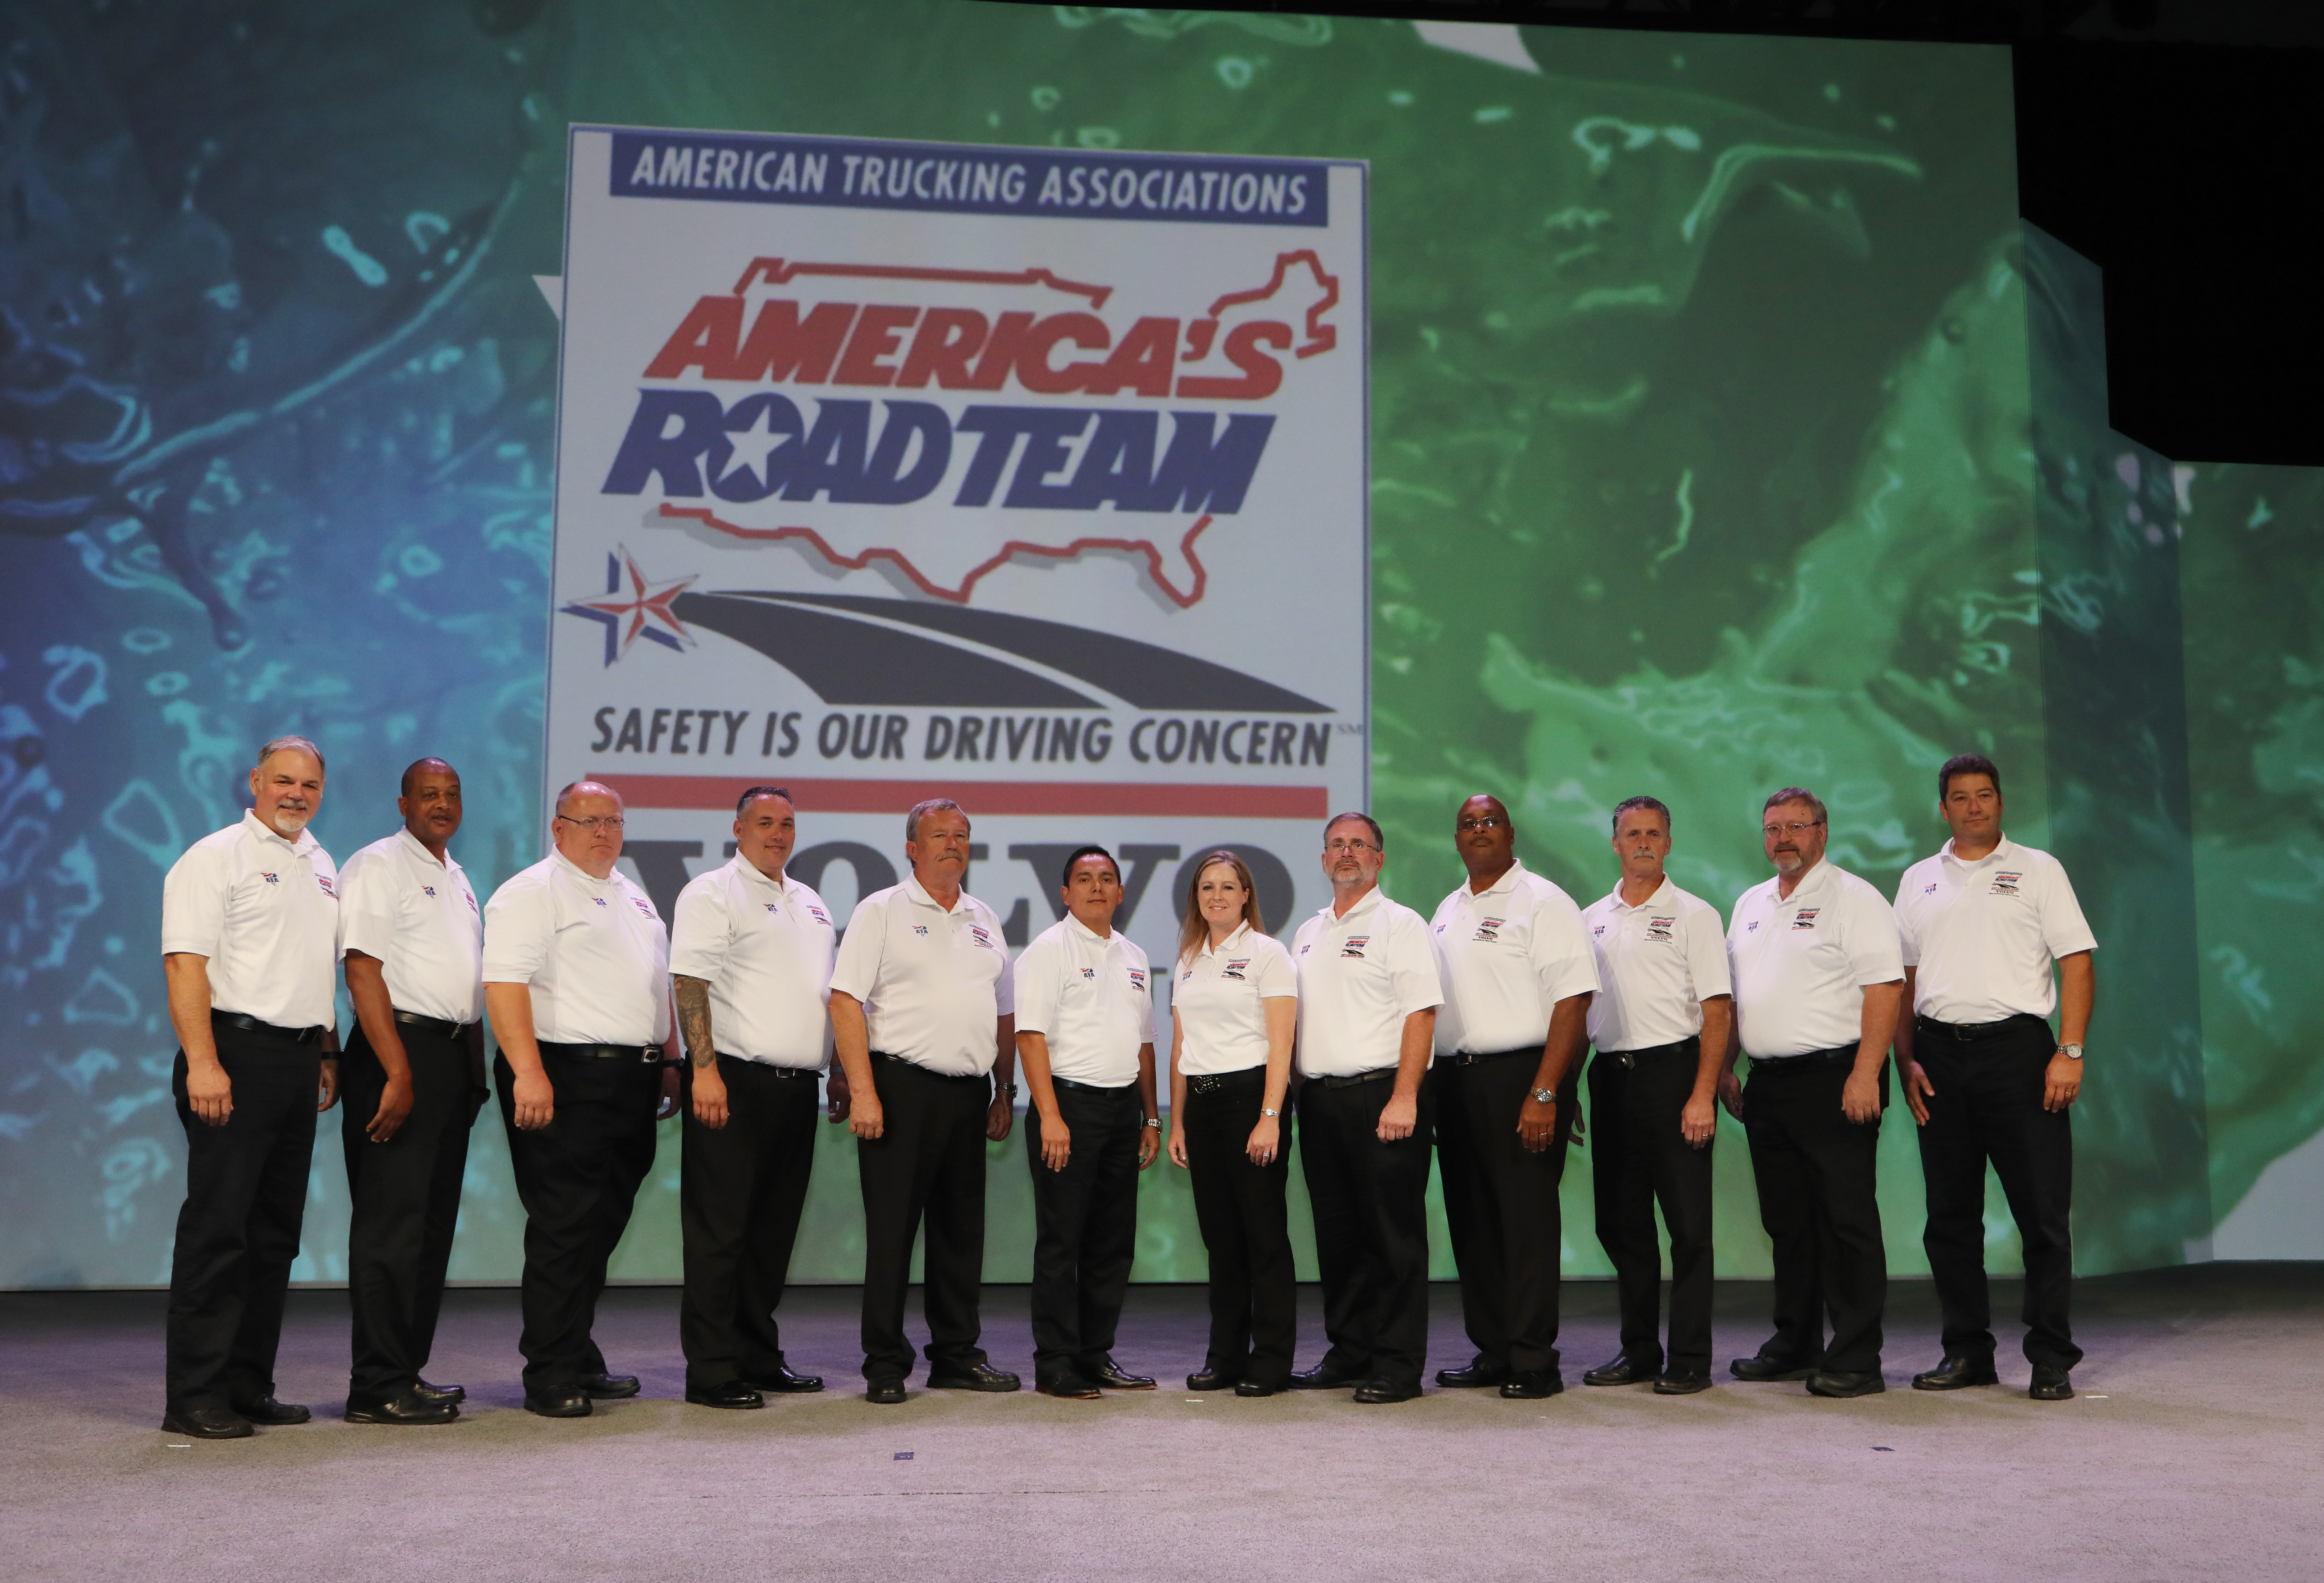 America's Road Team at MCE